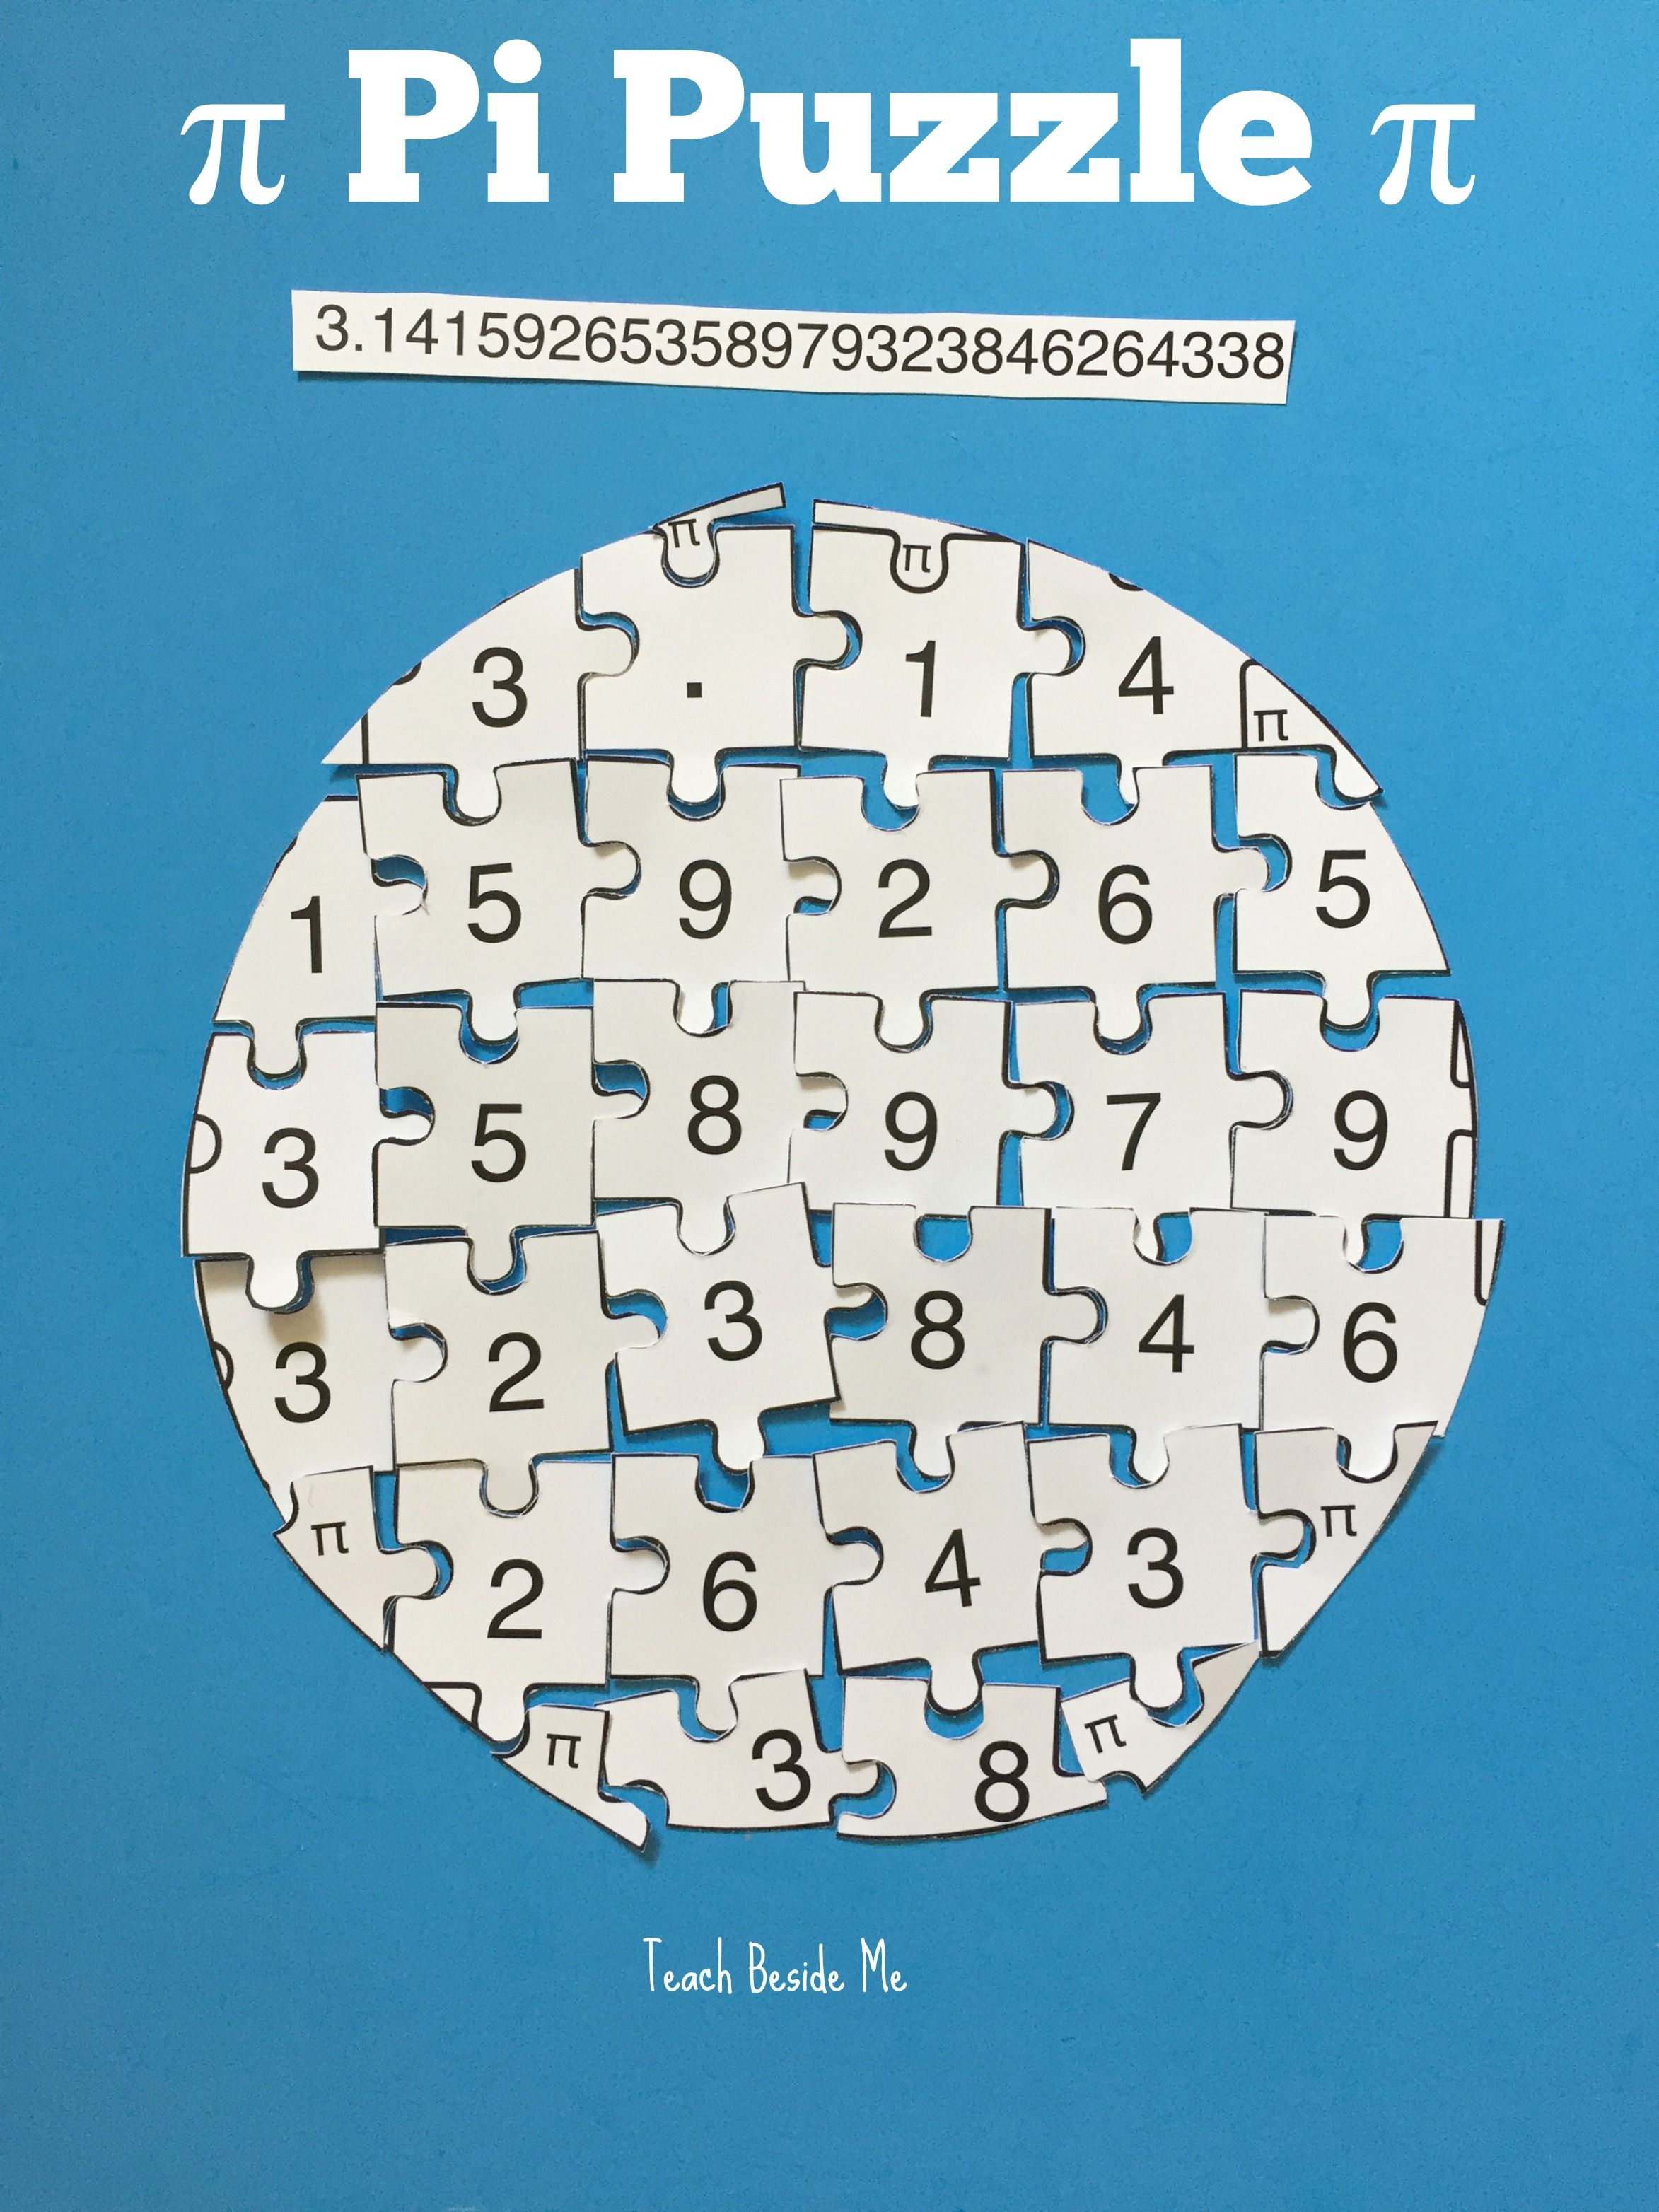 Printable Pi Puzzle For Pi Day   Teach Beside Me   Teaching Math - Printable Puzzle Of The Day